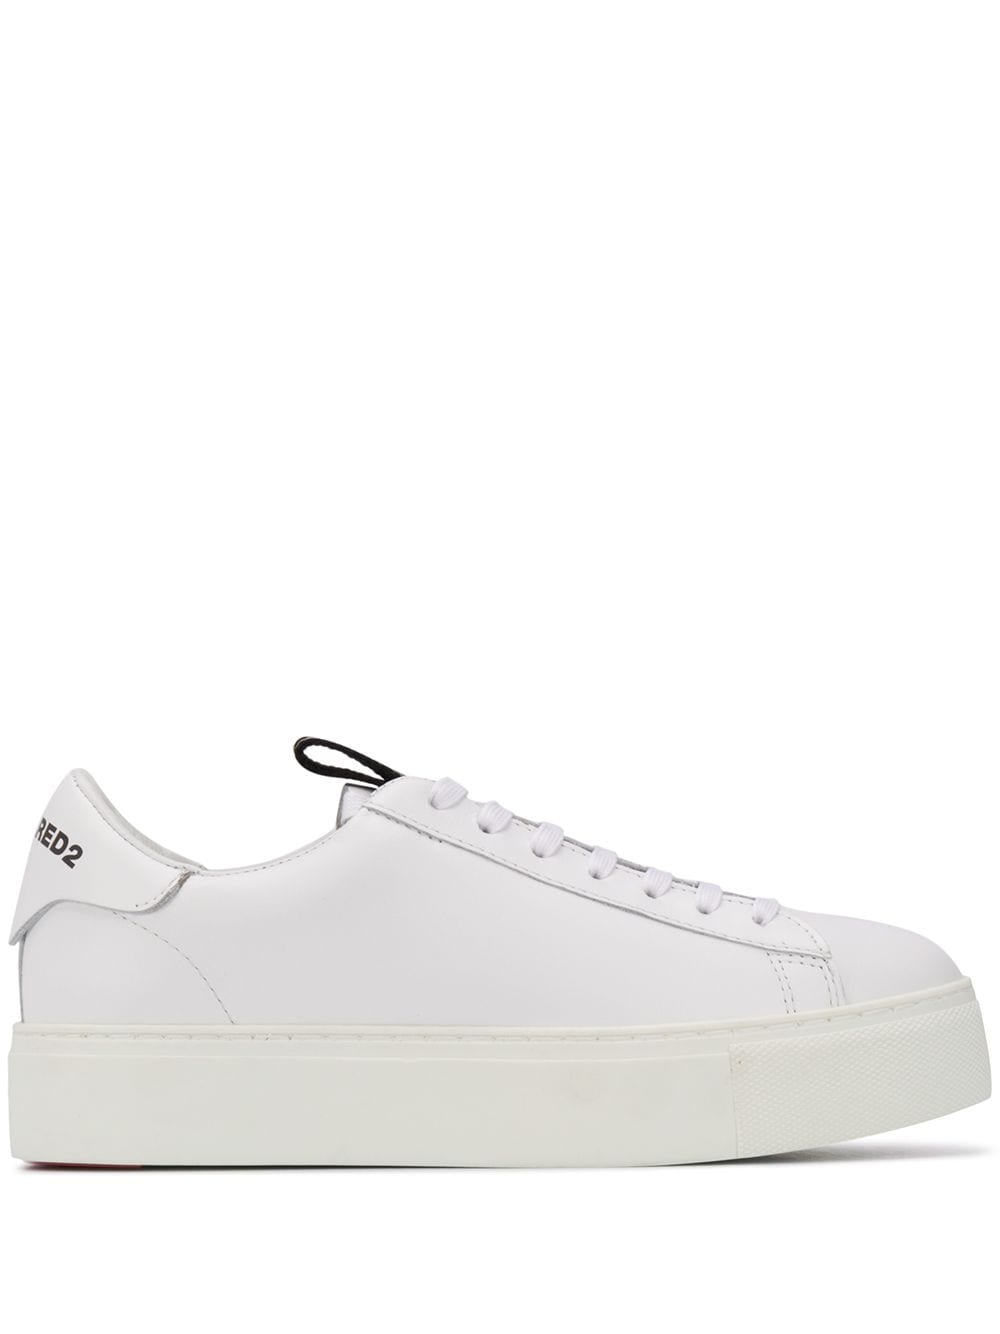 DSQUARED2 Women 251 Tape Sneakers White/Black - Maison De Fashion